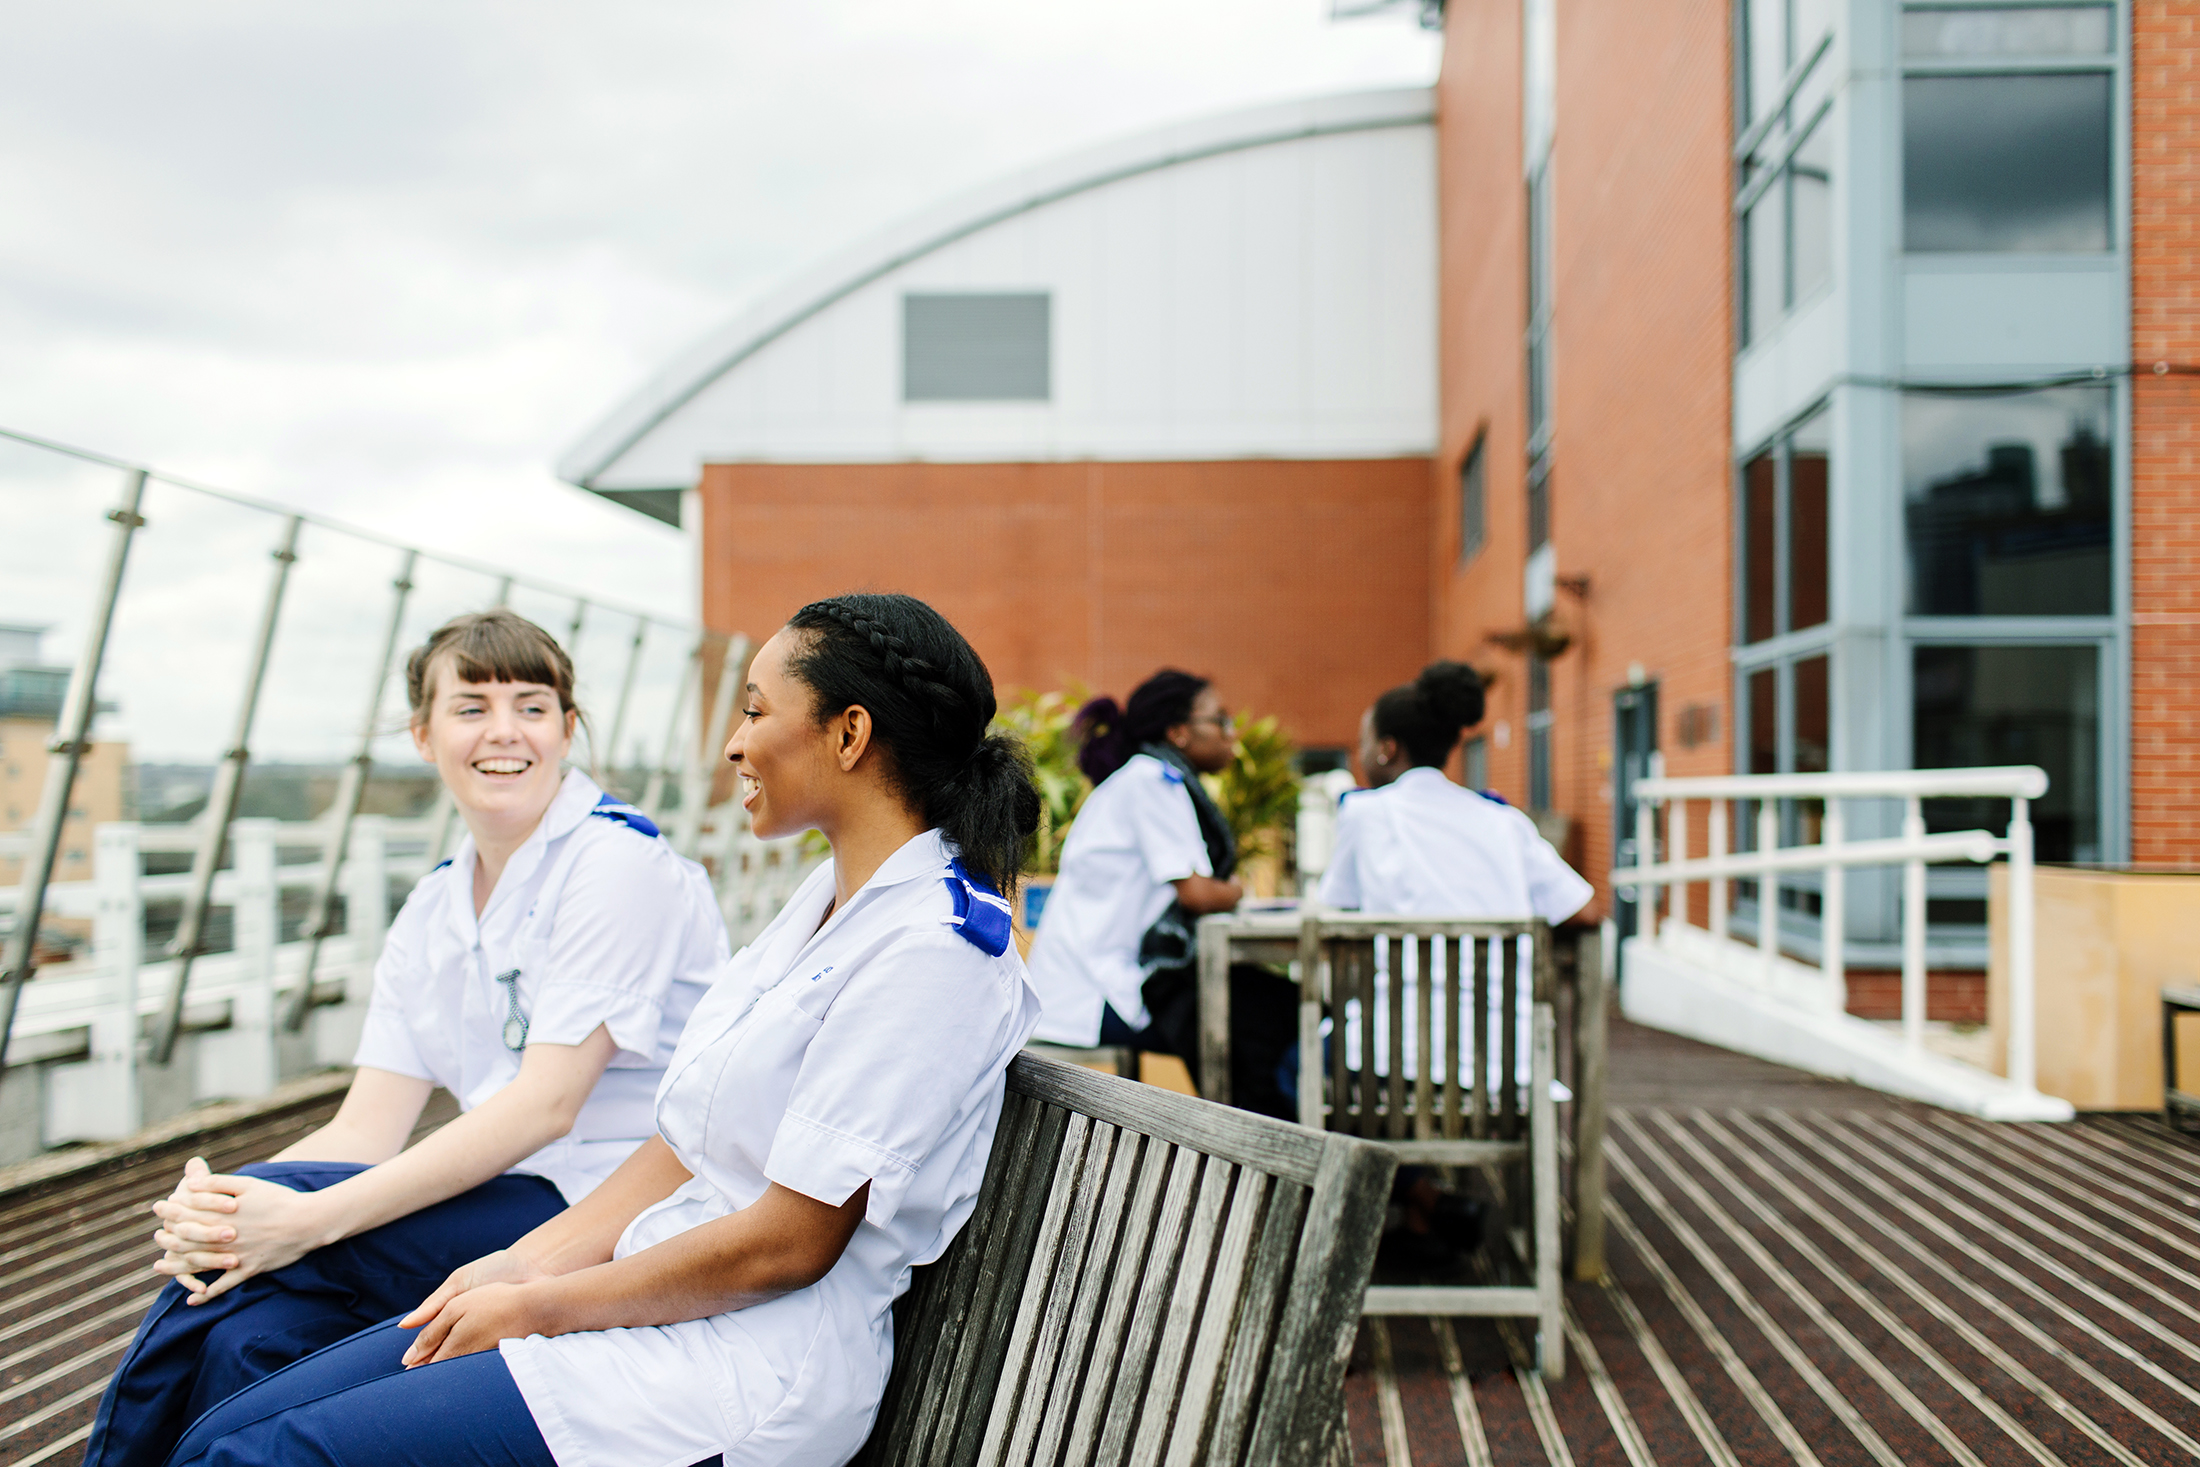 Two female student nurses sitting on a bench. Photograph by Mark Webster